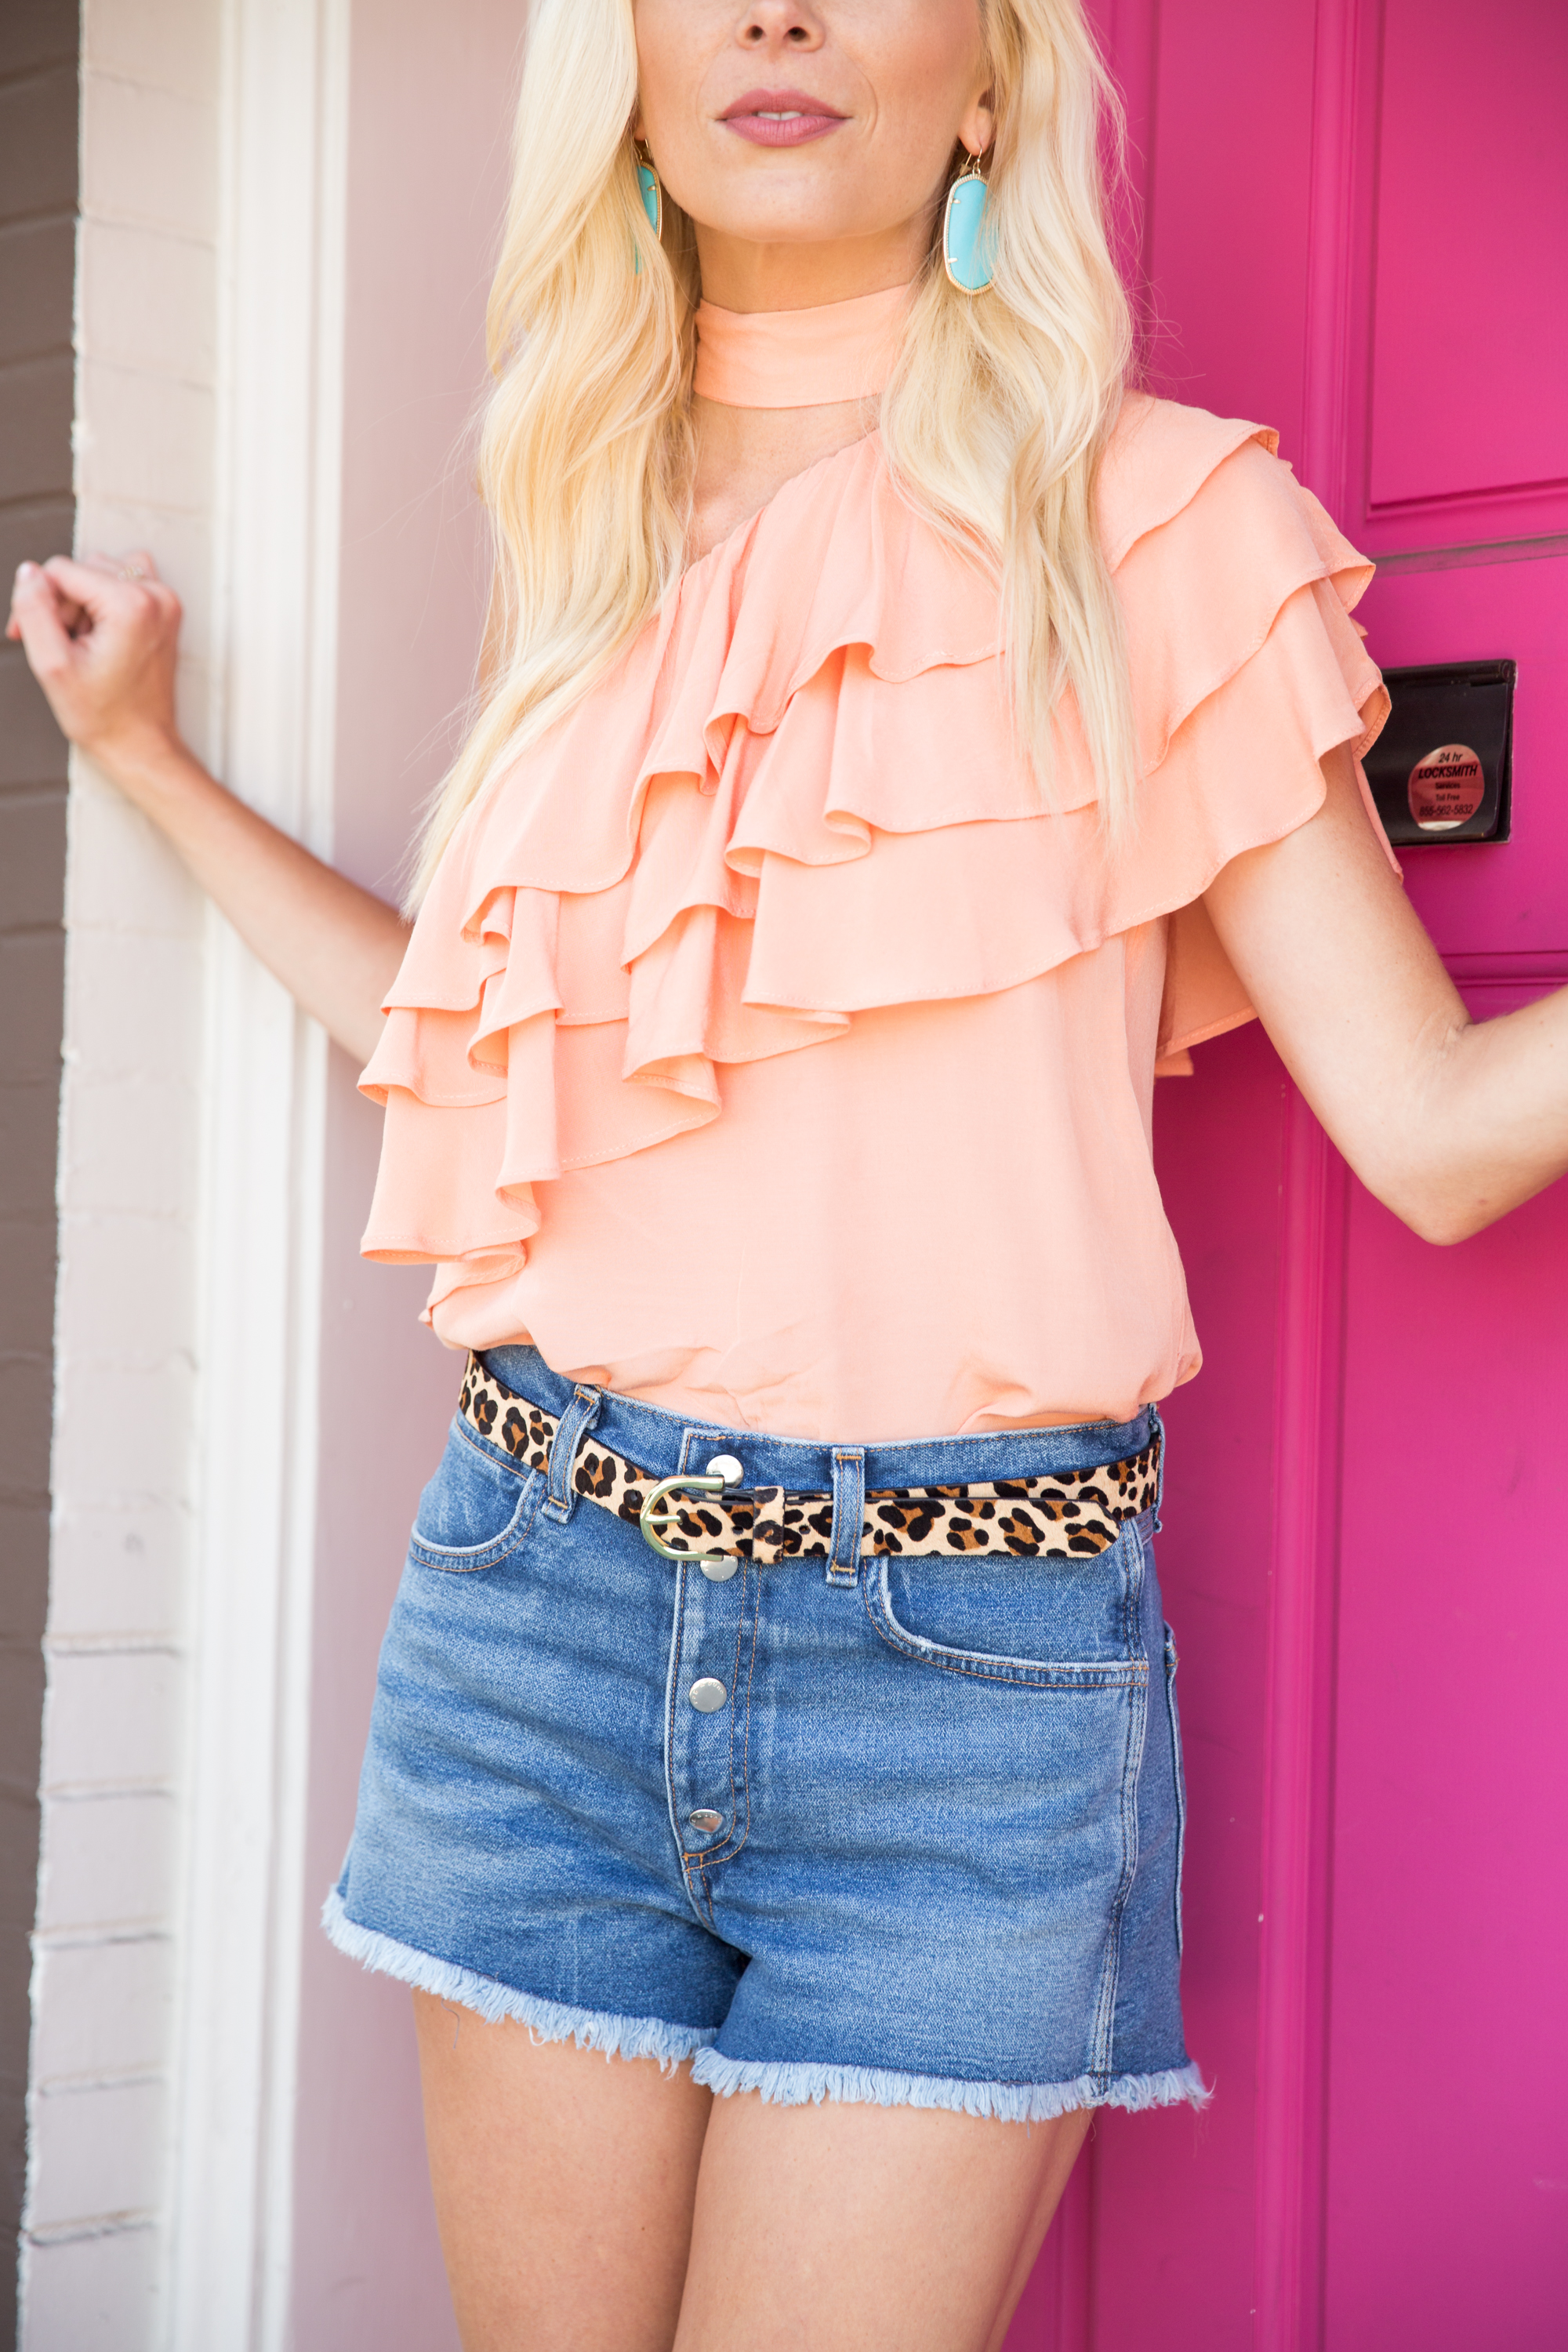 Ruffles, One Shoulder Tops and a Pop of Animal Print